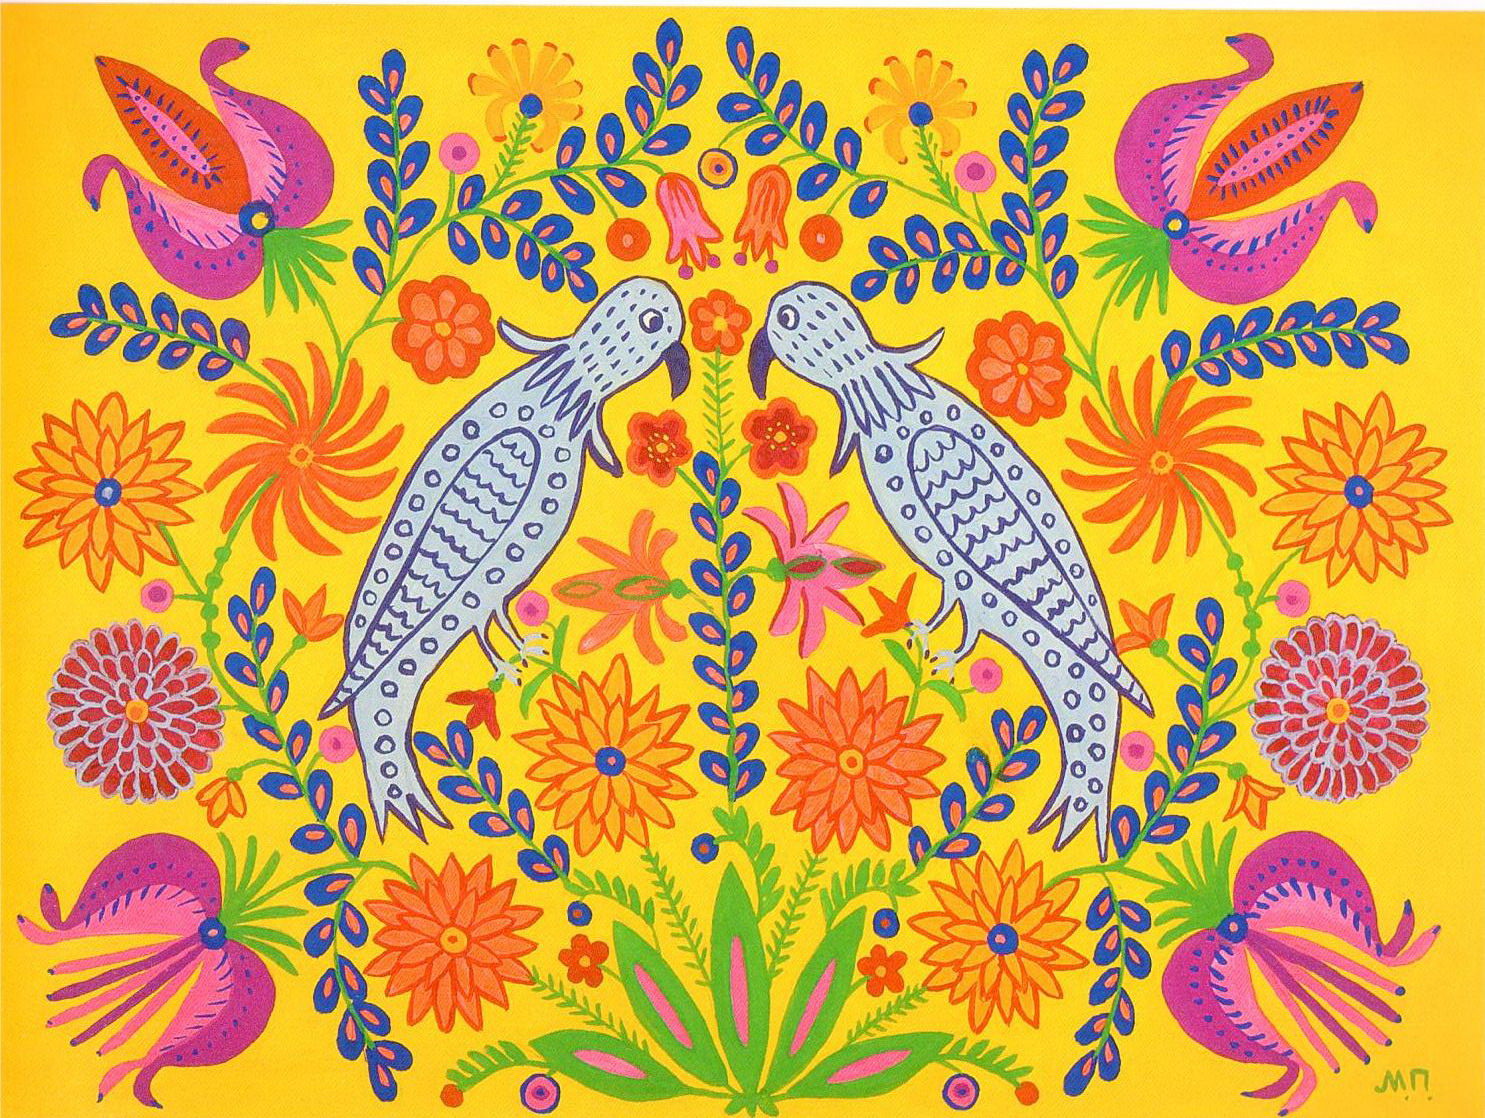 Maria Primachenko, Two Parrots Took a Walk Together in Spring, 1980